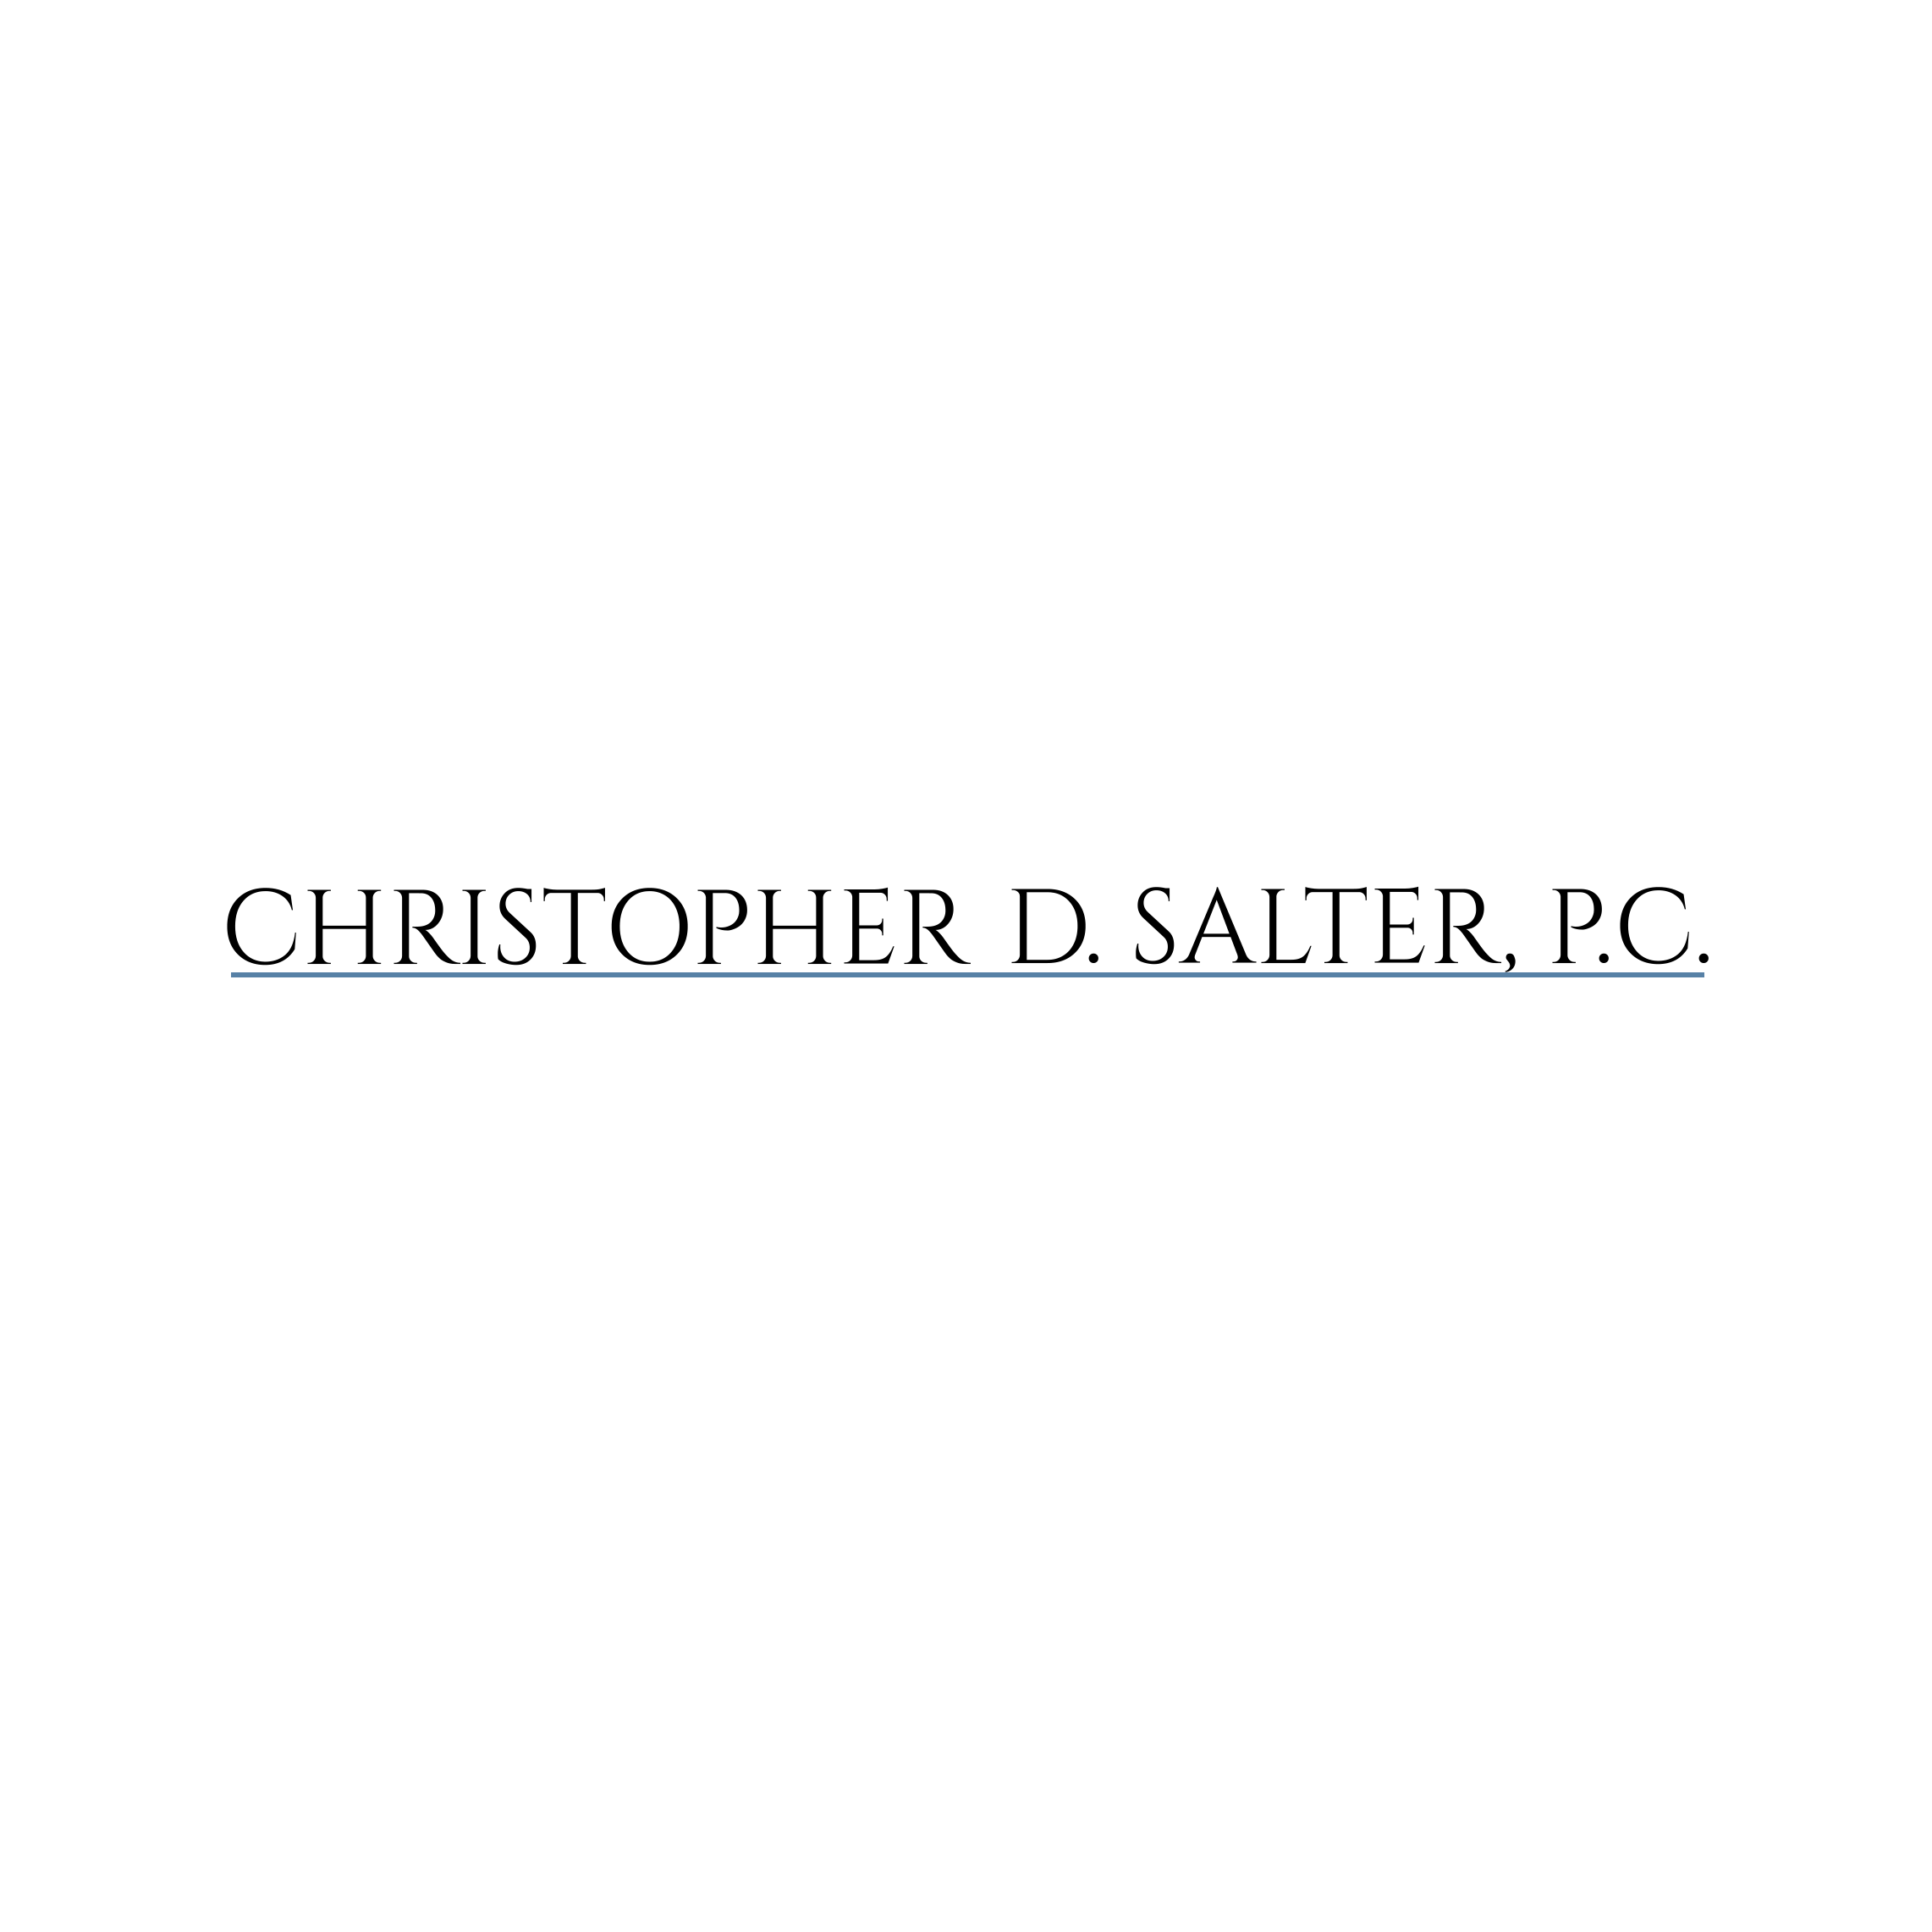 Christopher D. Salter, P.C.